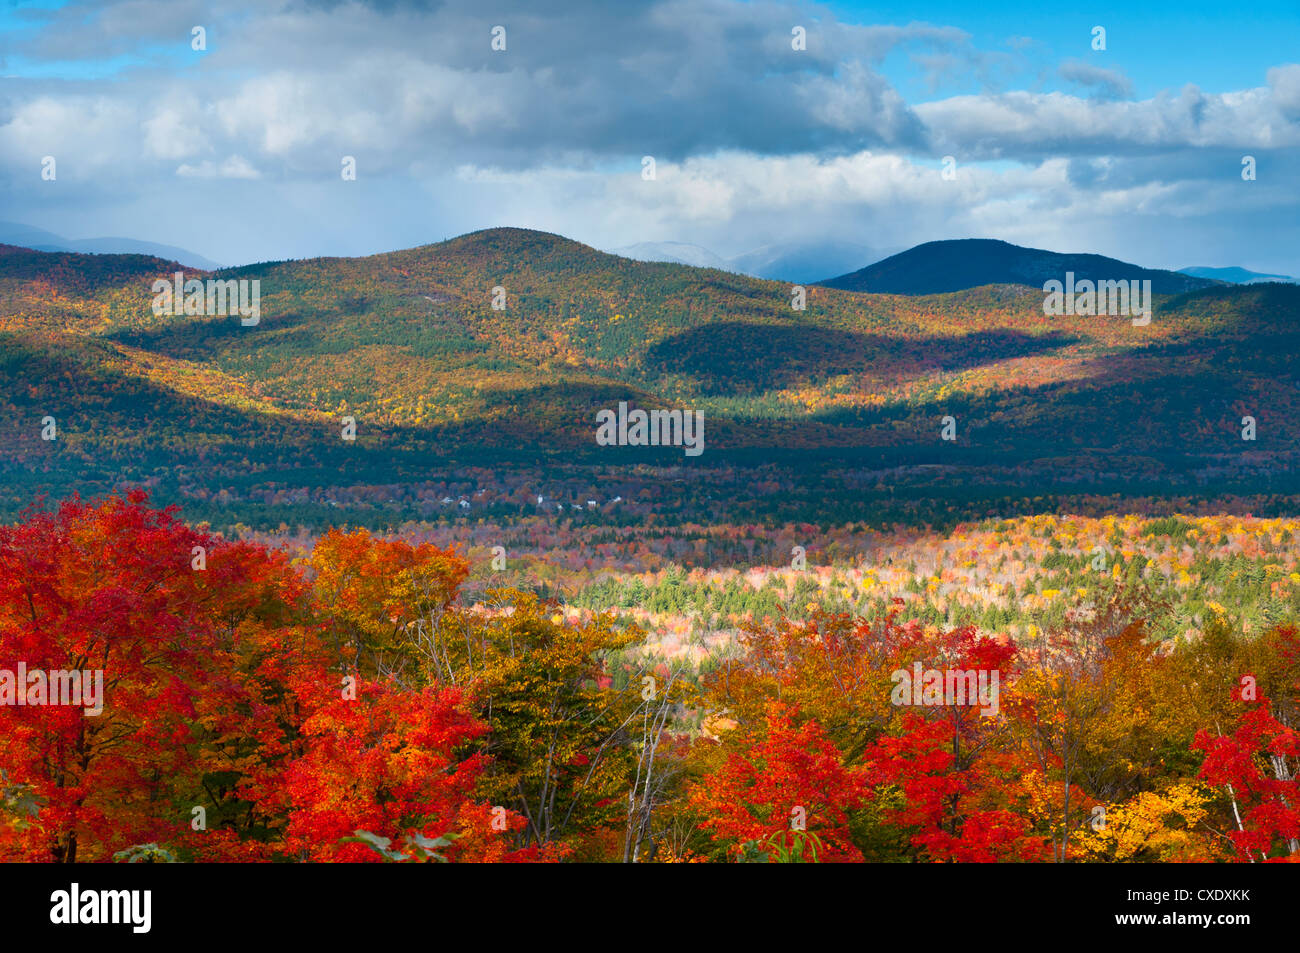 White Mountains National Forest, New Hampshire, New England, United States of America, North America - Stock Image